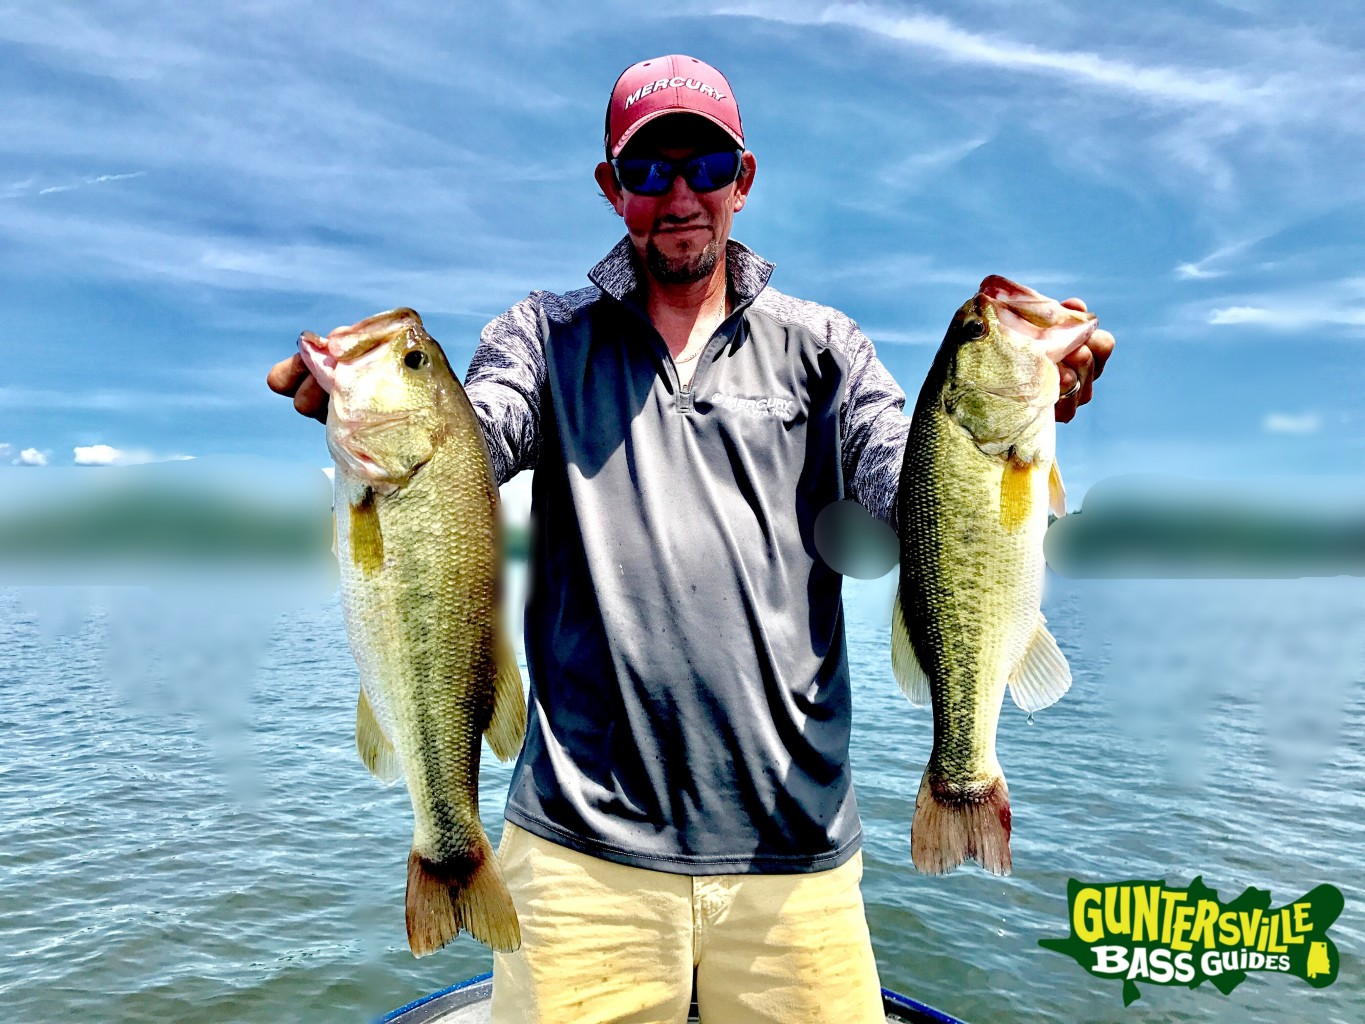 lake guntersville june 28th